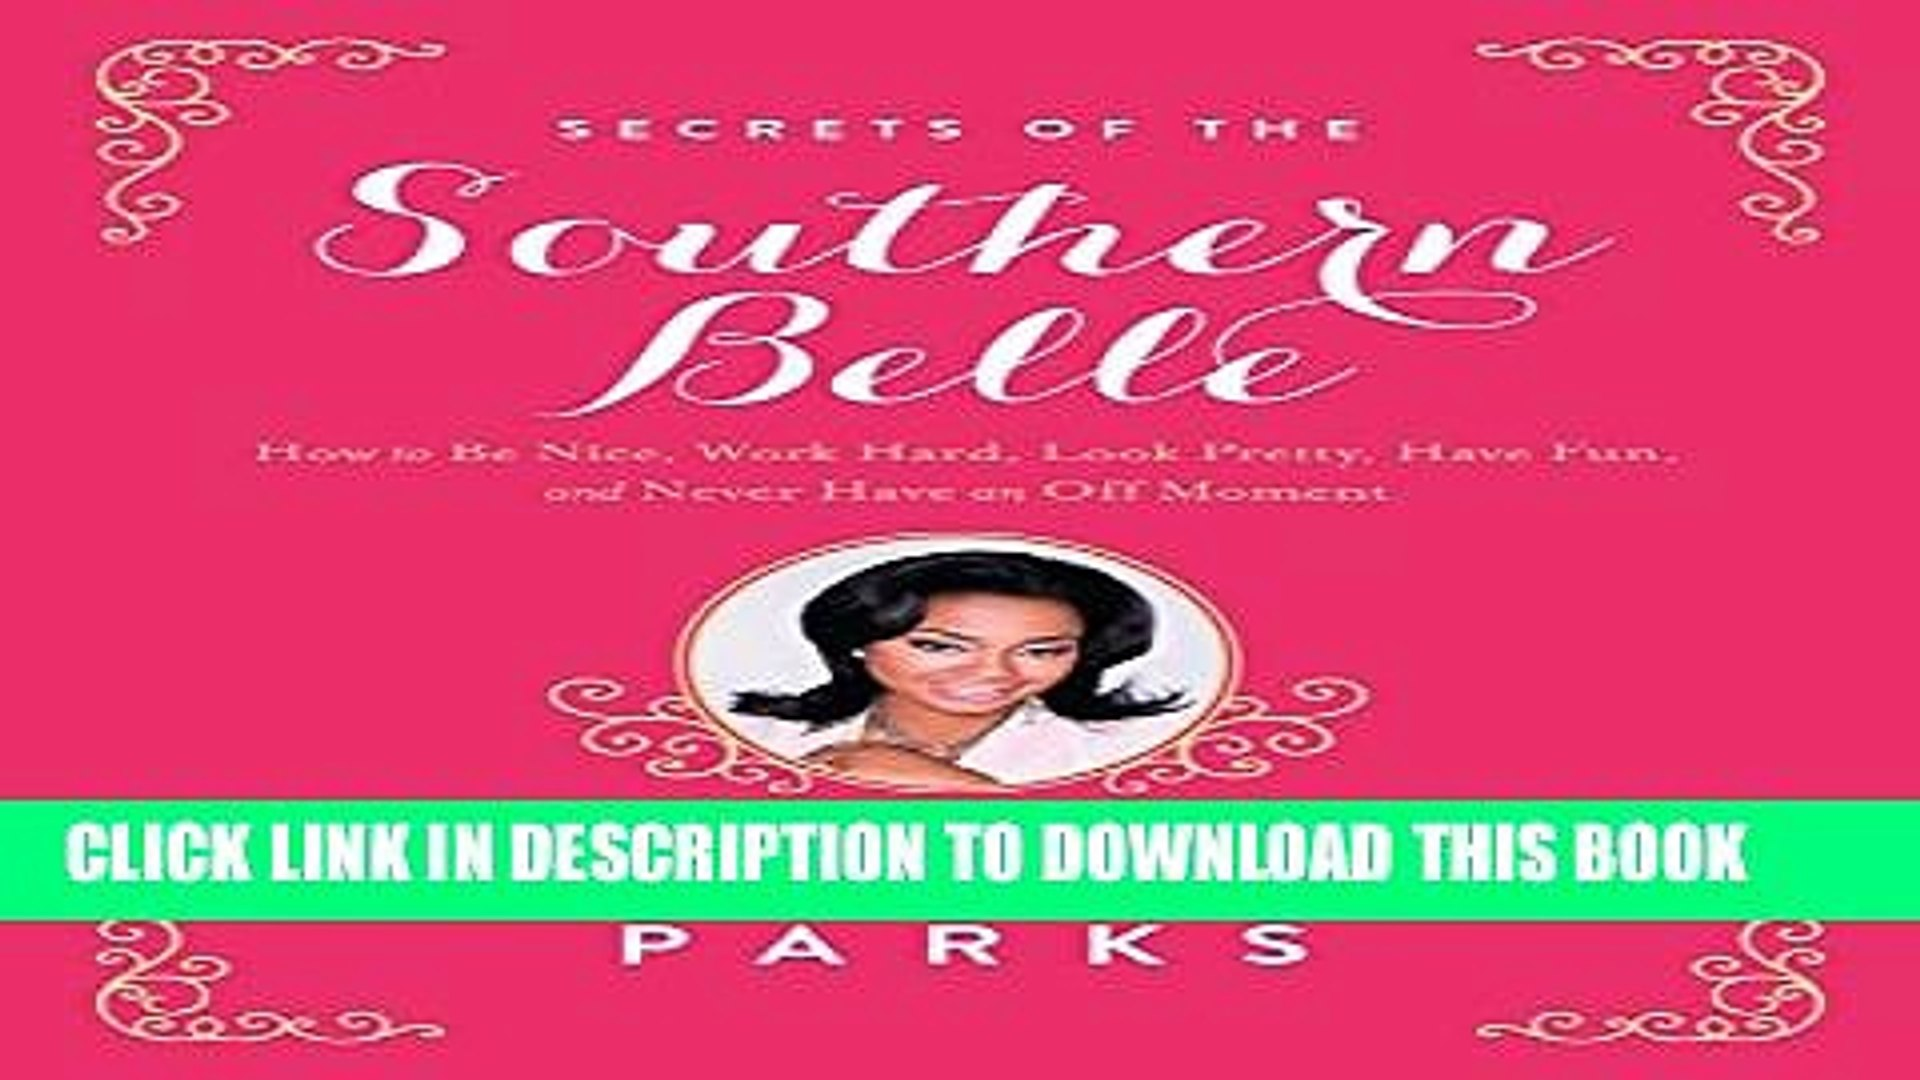 Collection Book Secrets of the Southern Belle: How to Be Nice, Work Hard, Look Pretty, Have Fun,